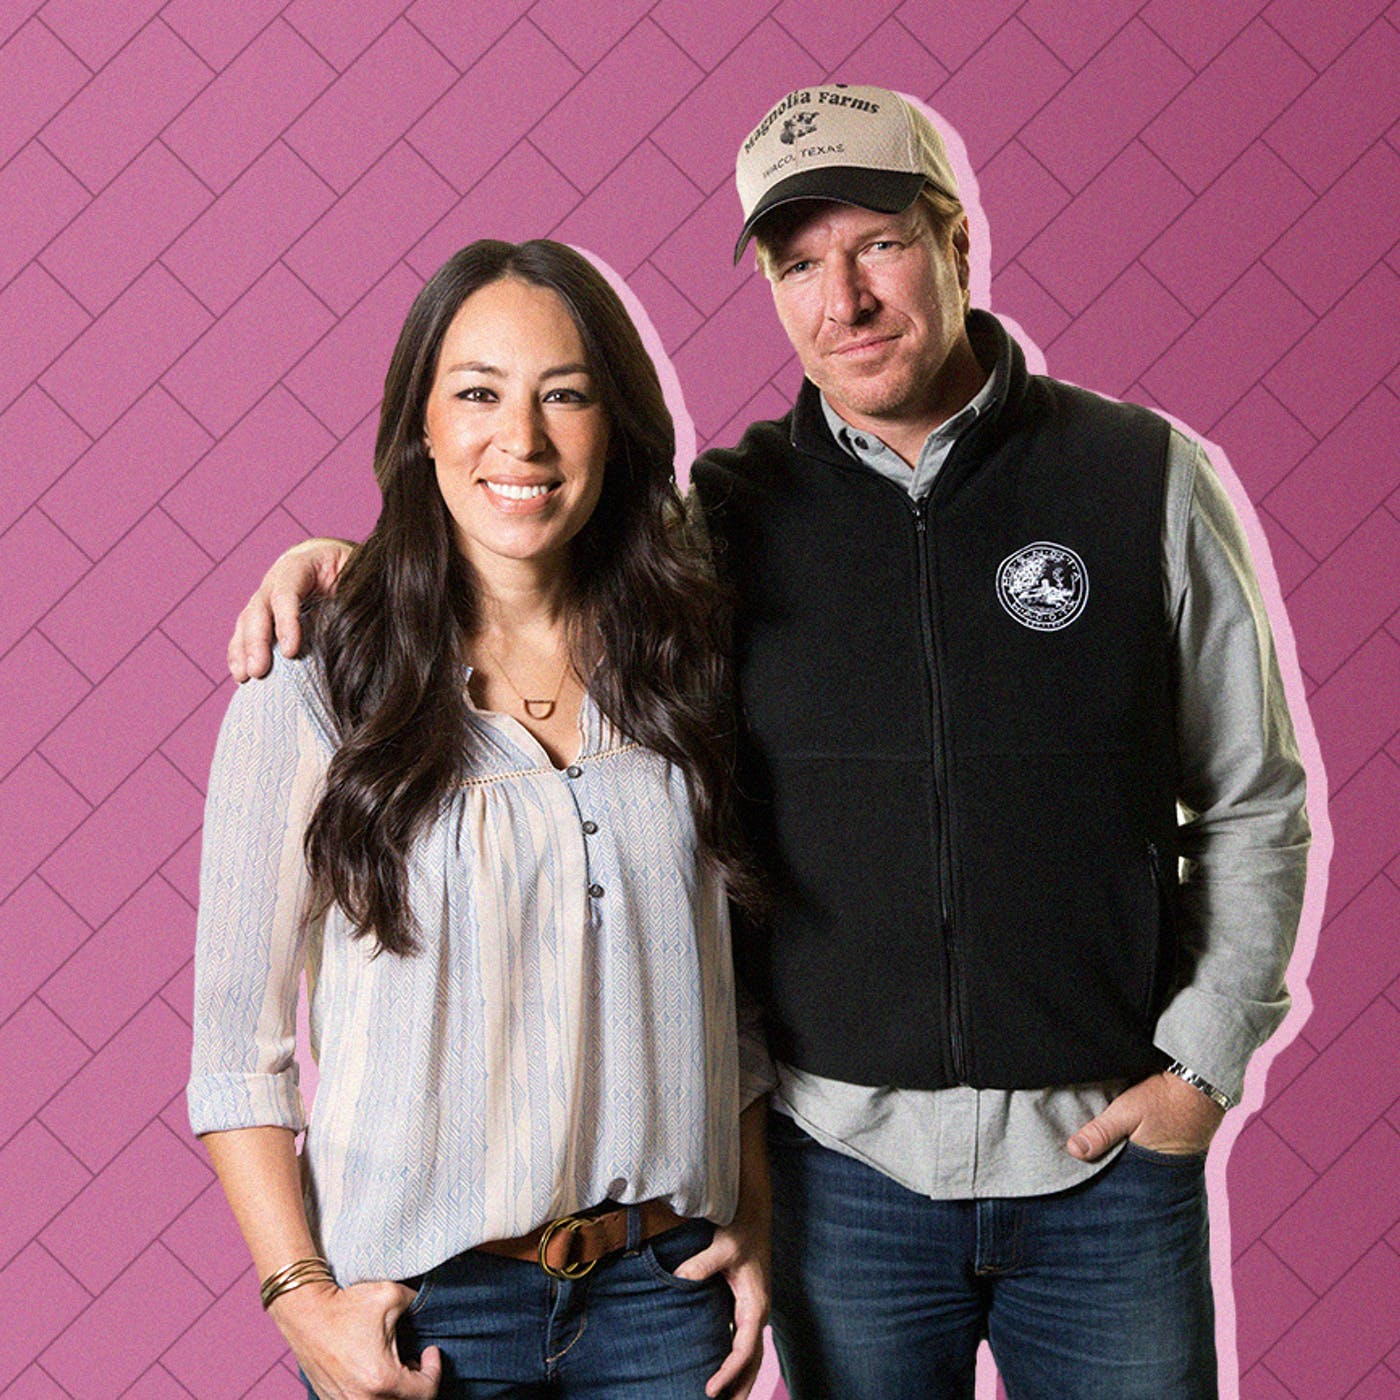 Chips Et Joanna Gaines chip and joanna gaines are coming back to television, y'all